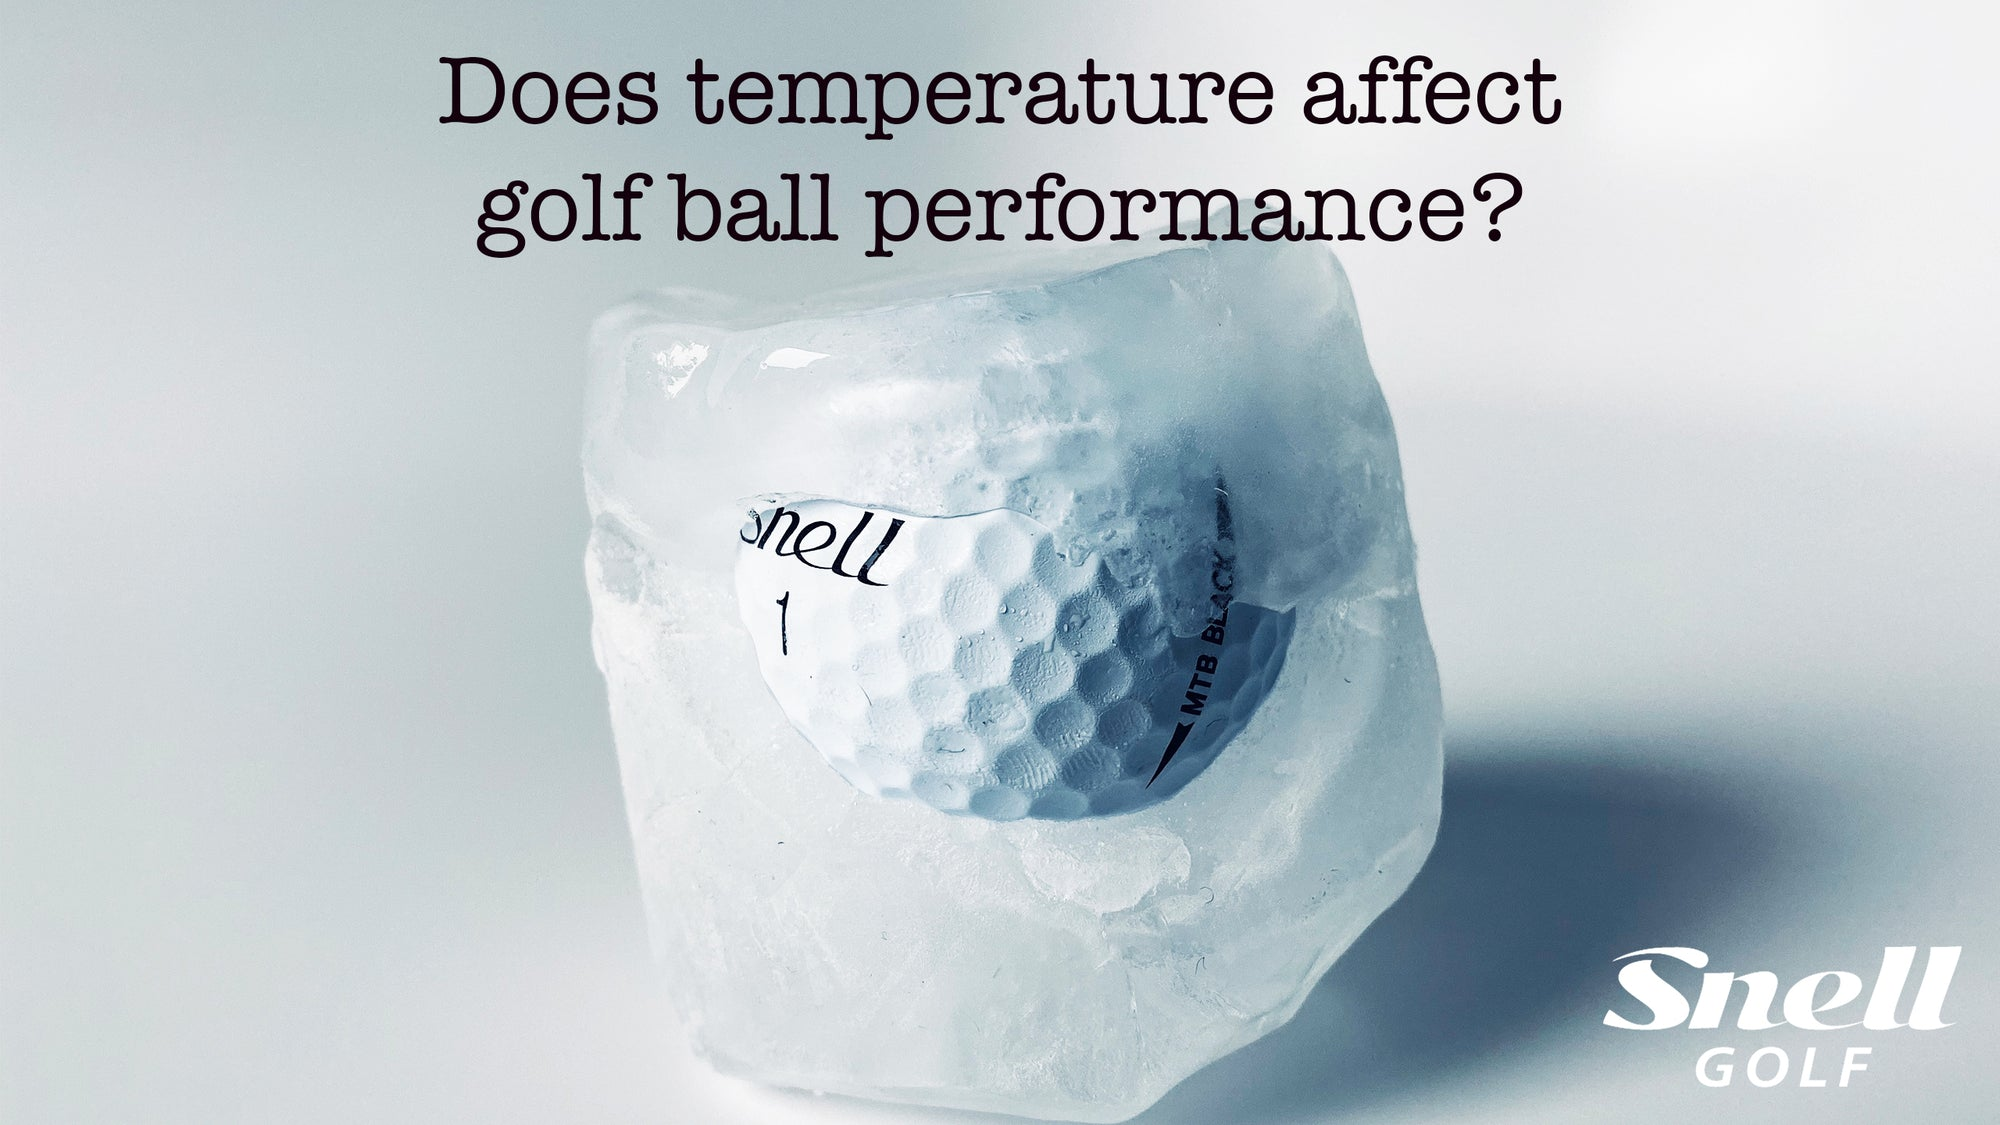 Does temperature affect golf ball performance?